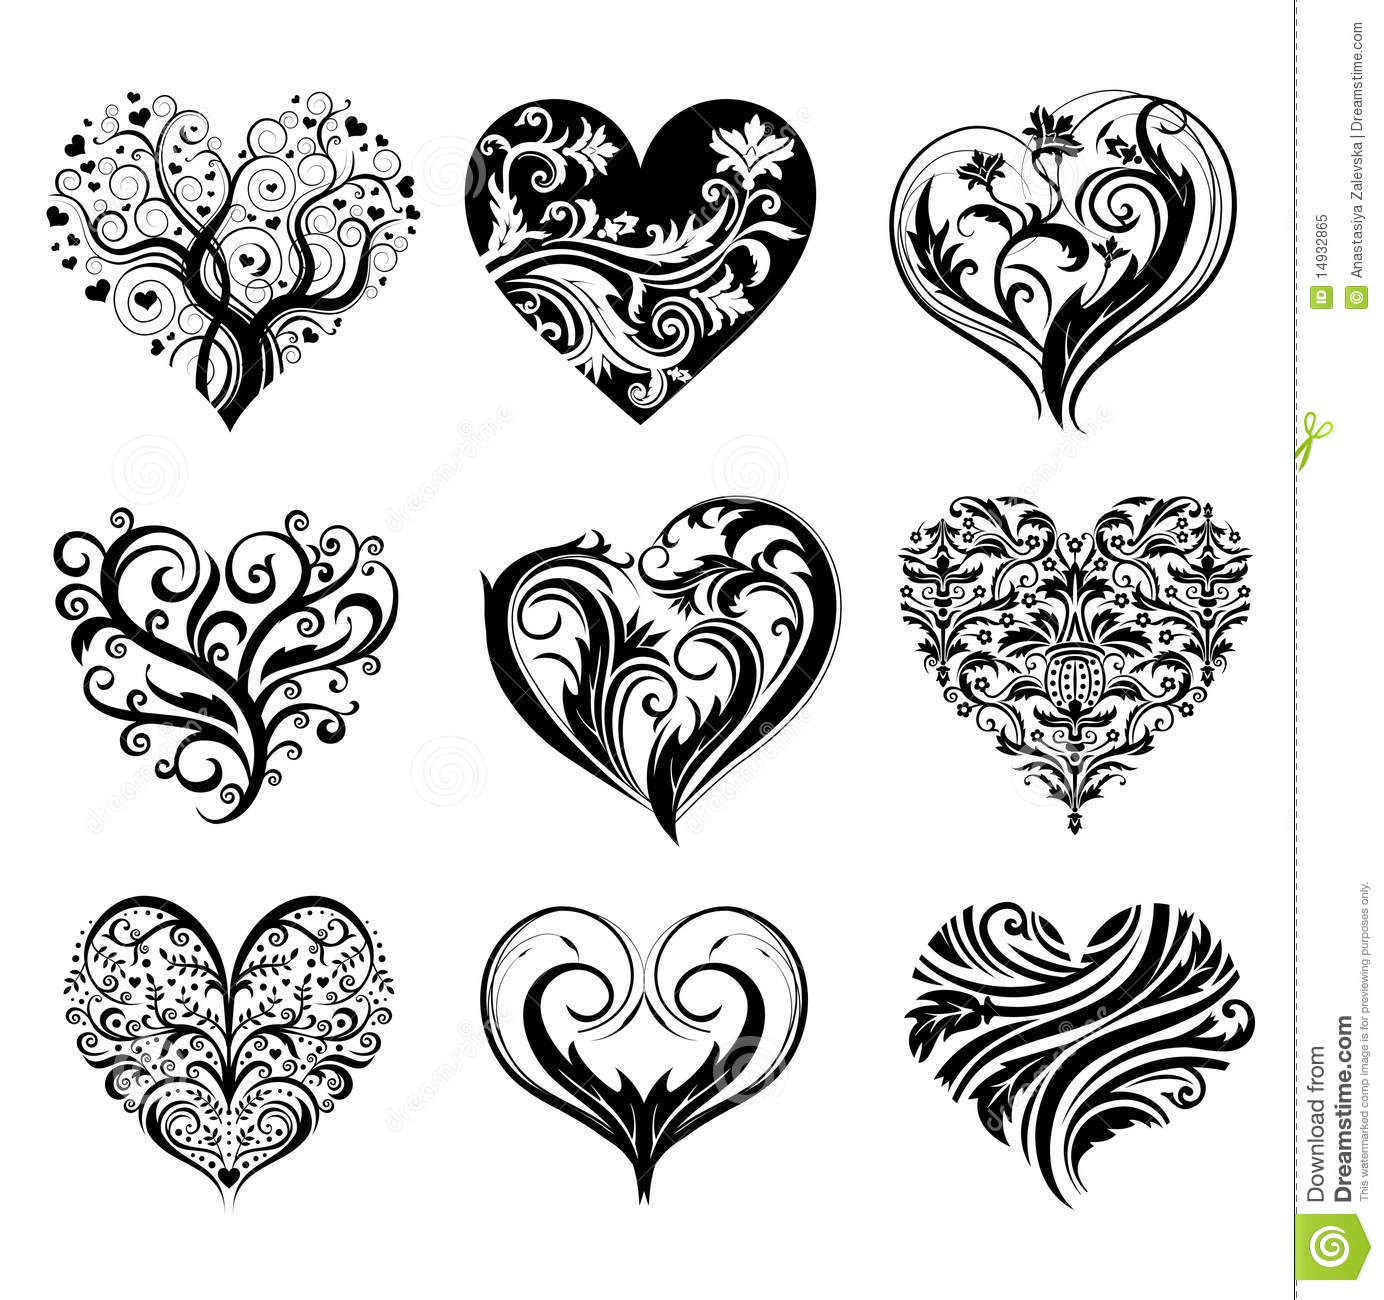 tattoo hearts stock vector illustration of curly ethnic 14932865. Black Bedroom Furniture Sets. Home Design Ideas